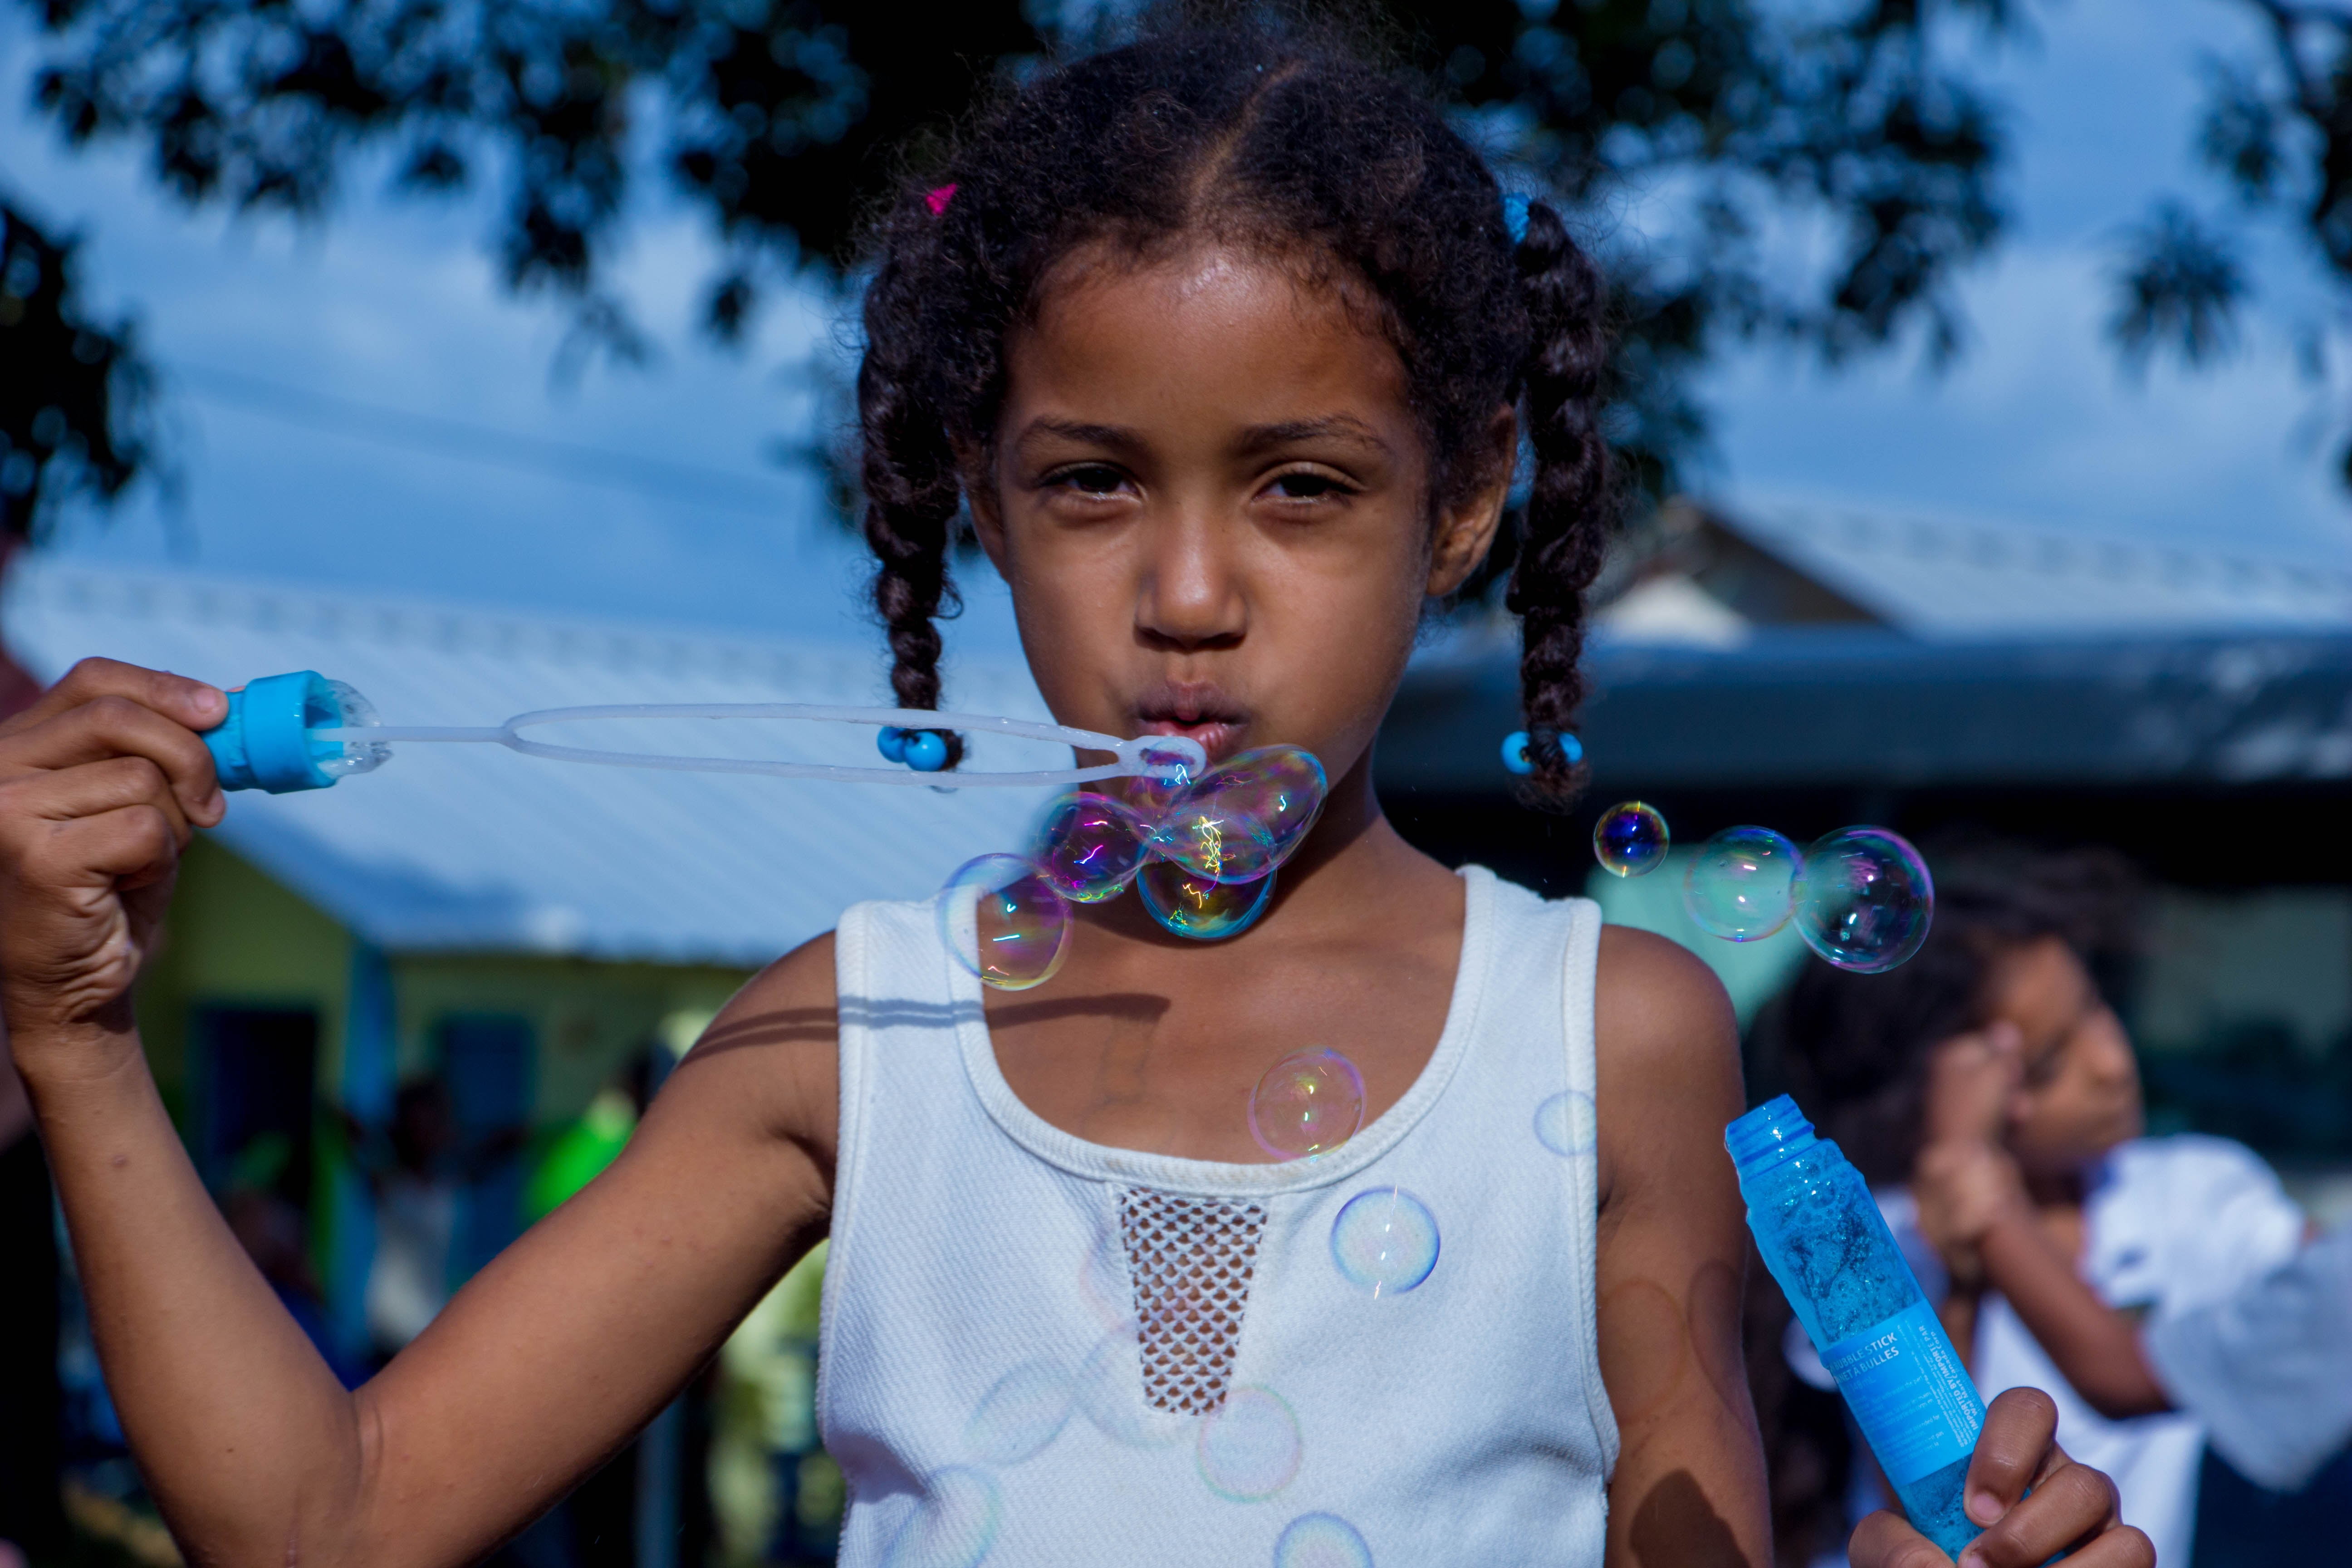 girl in white sleeveless top blowing bubbles